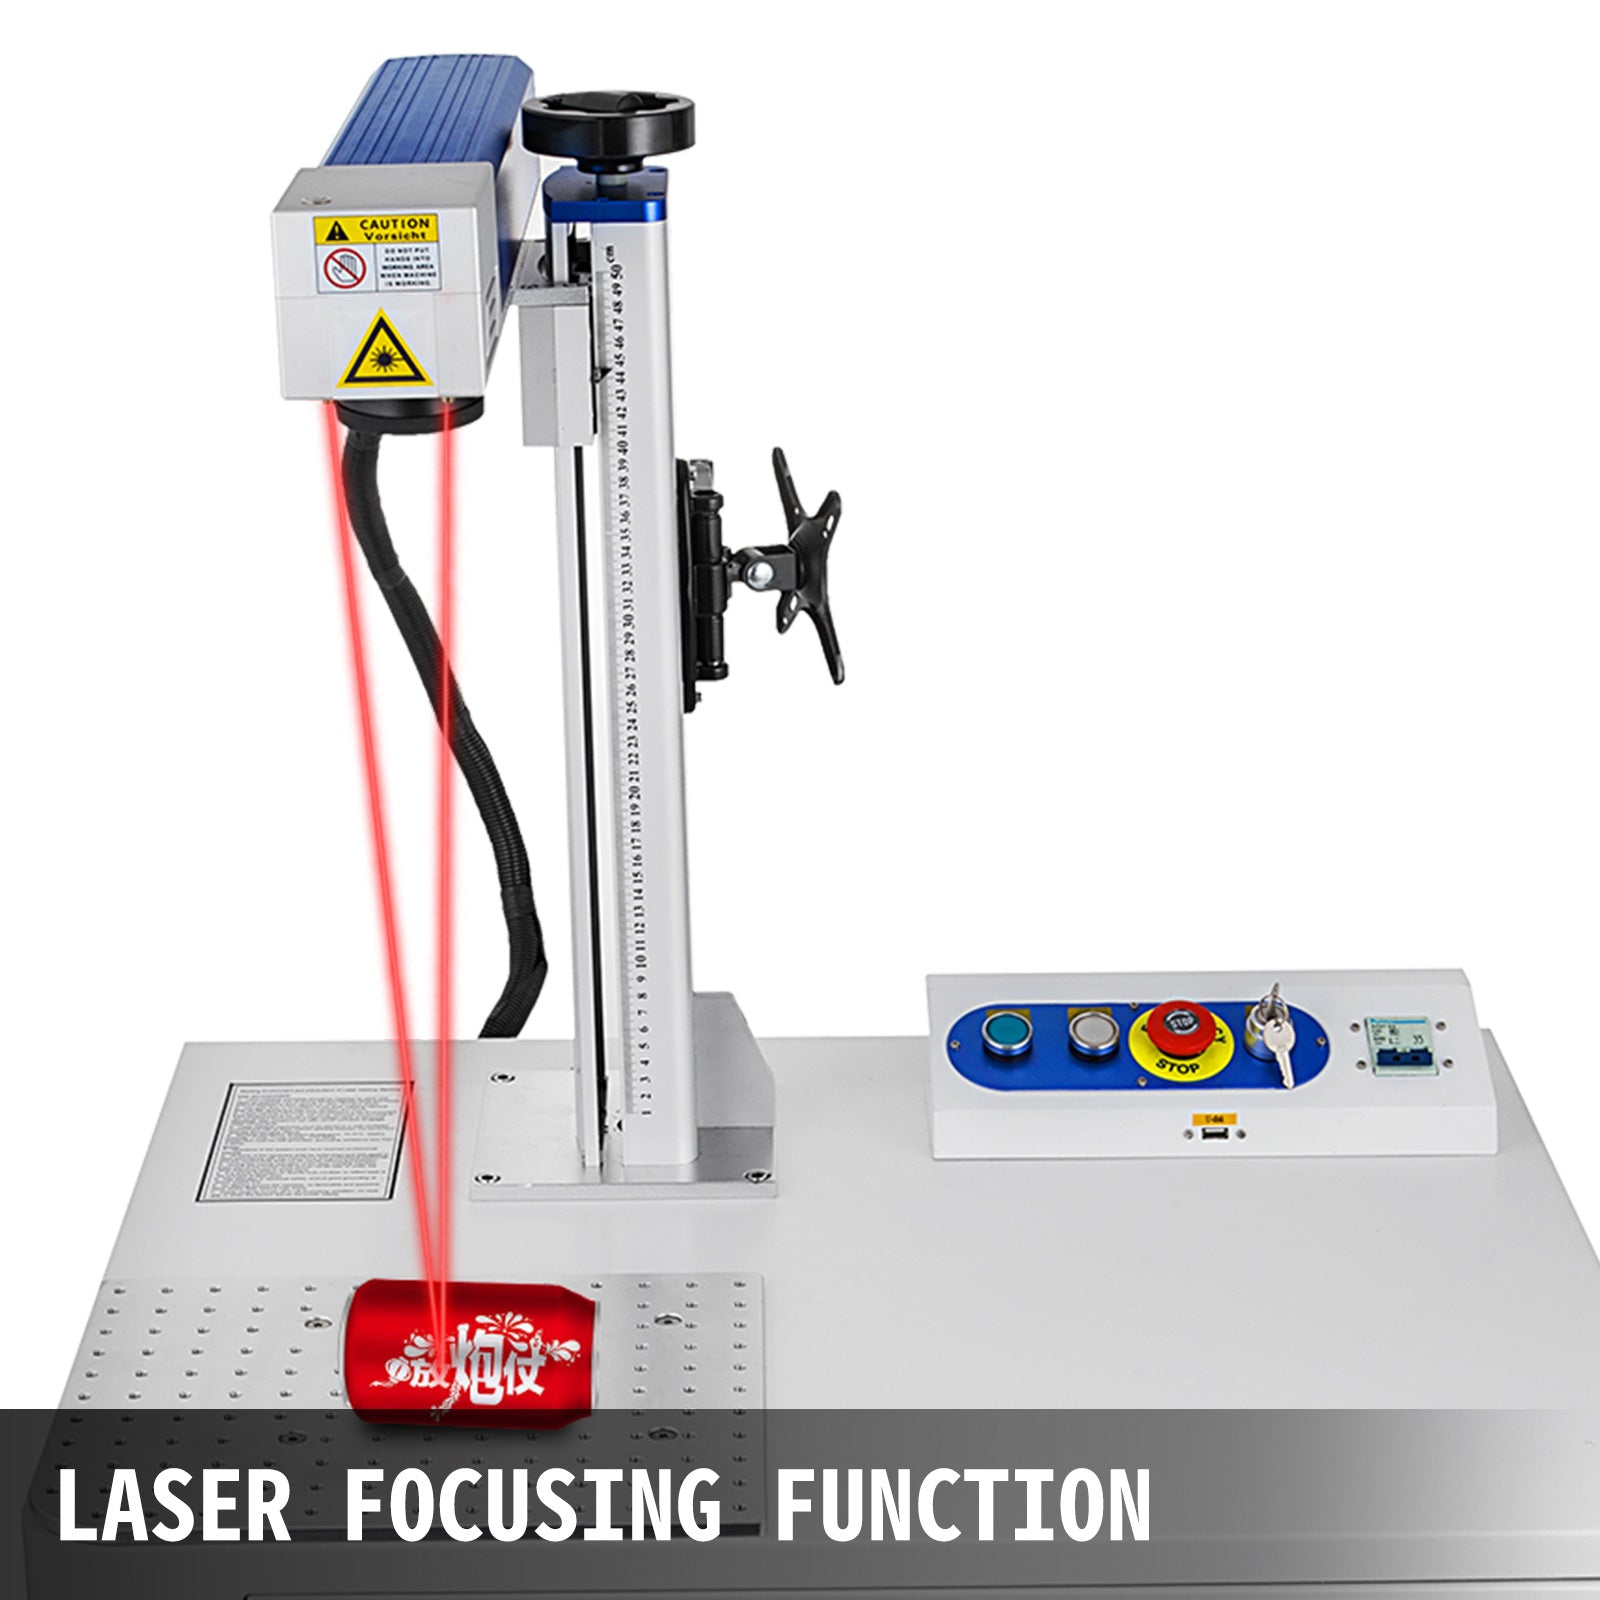 20w Fiber Laser Marking Machine 150*150mm Desktop Laser Focus Marking Printing